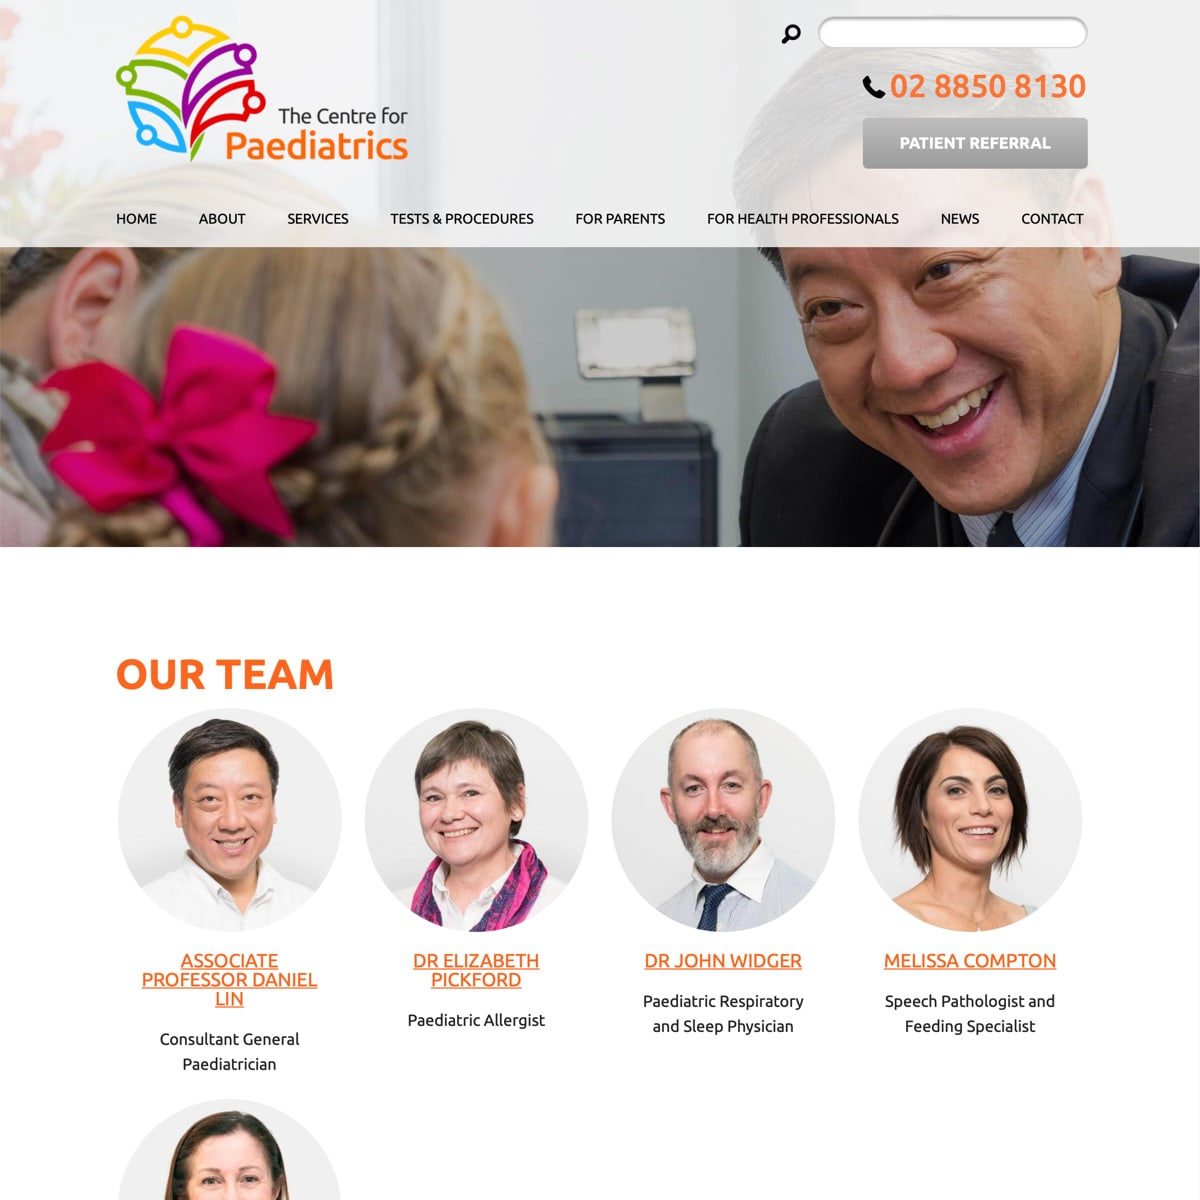 The Centre for Paediatrics - Our Team